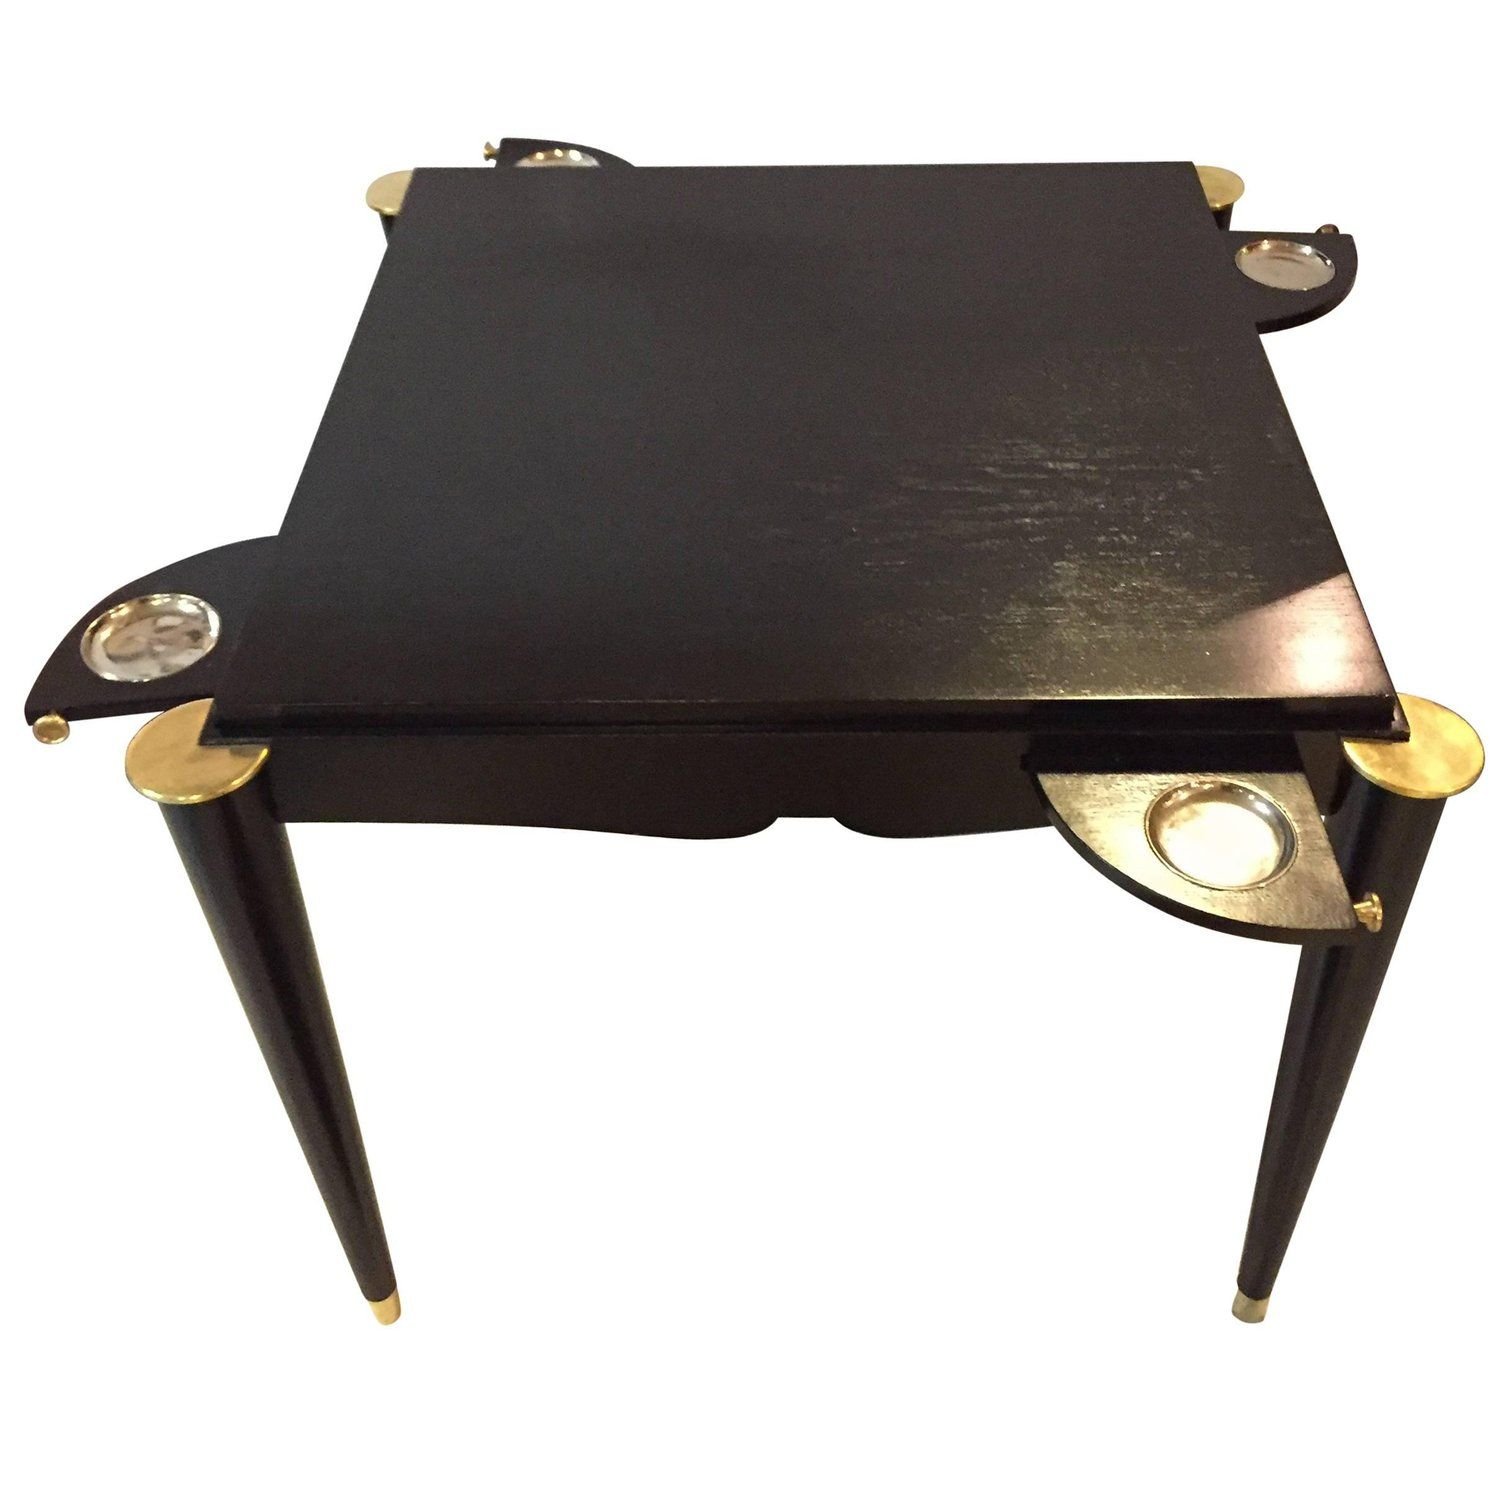 Ebonized MidCentury Modern Card Or Game Table Pinterest Game - Mid century modern card table